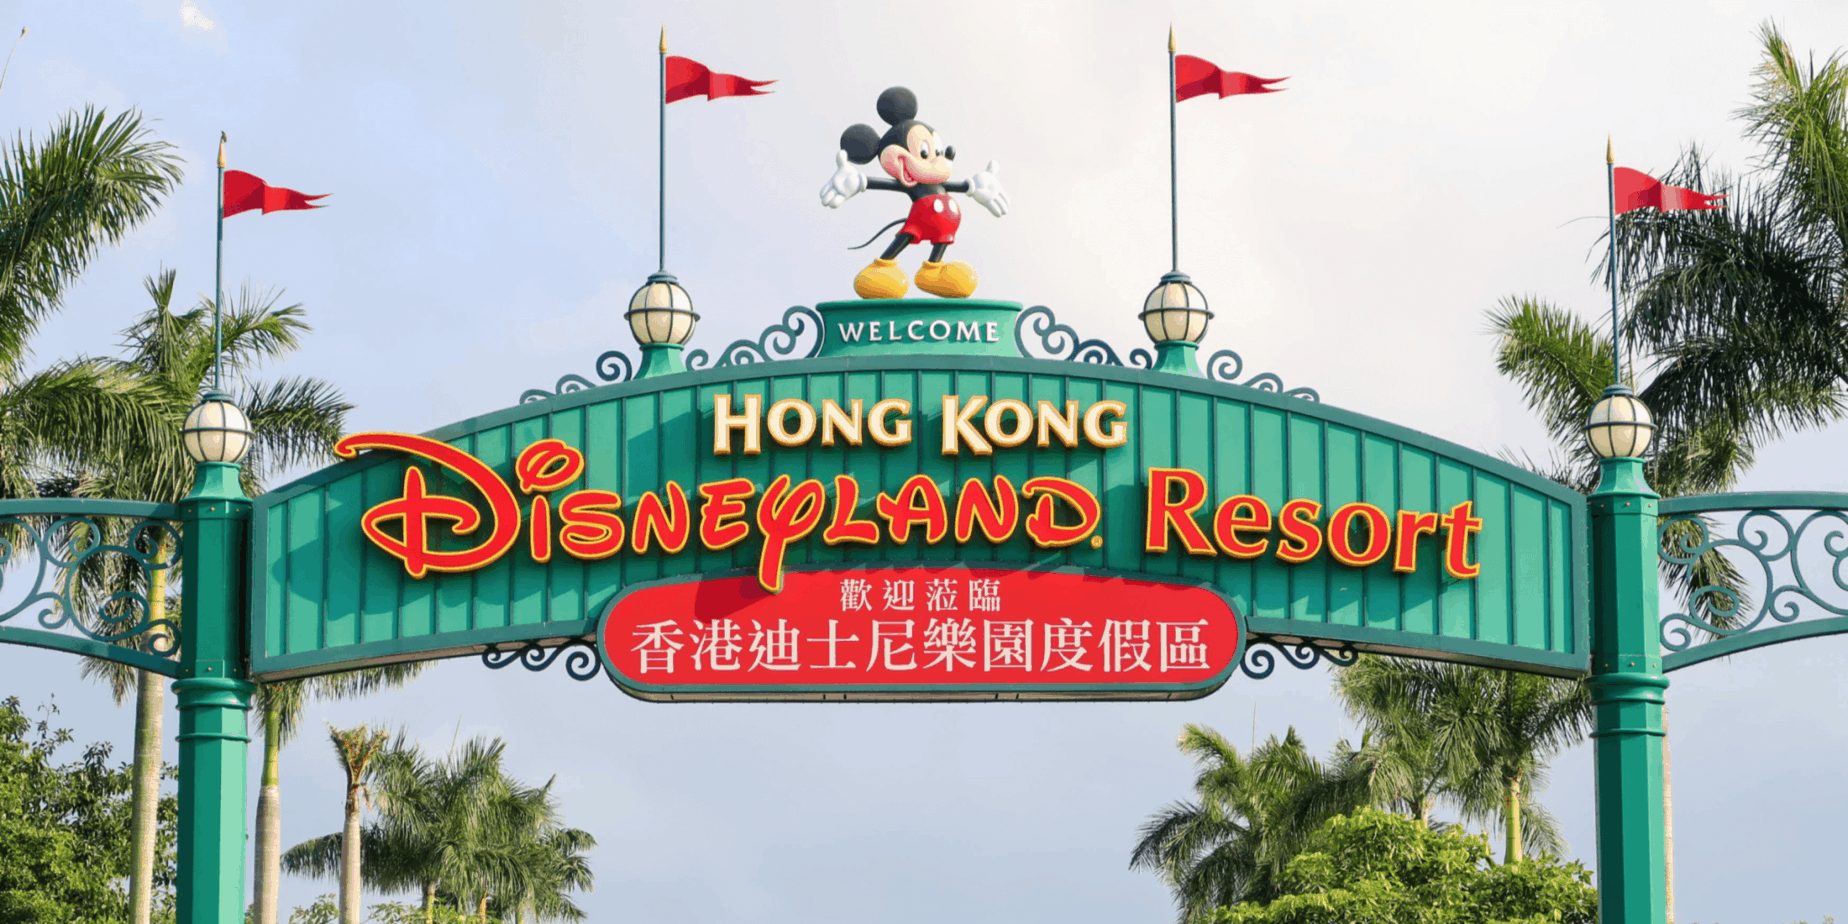 Our Best Hong Kong Disneyland Trip Planning Articles